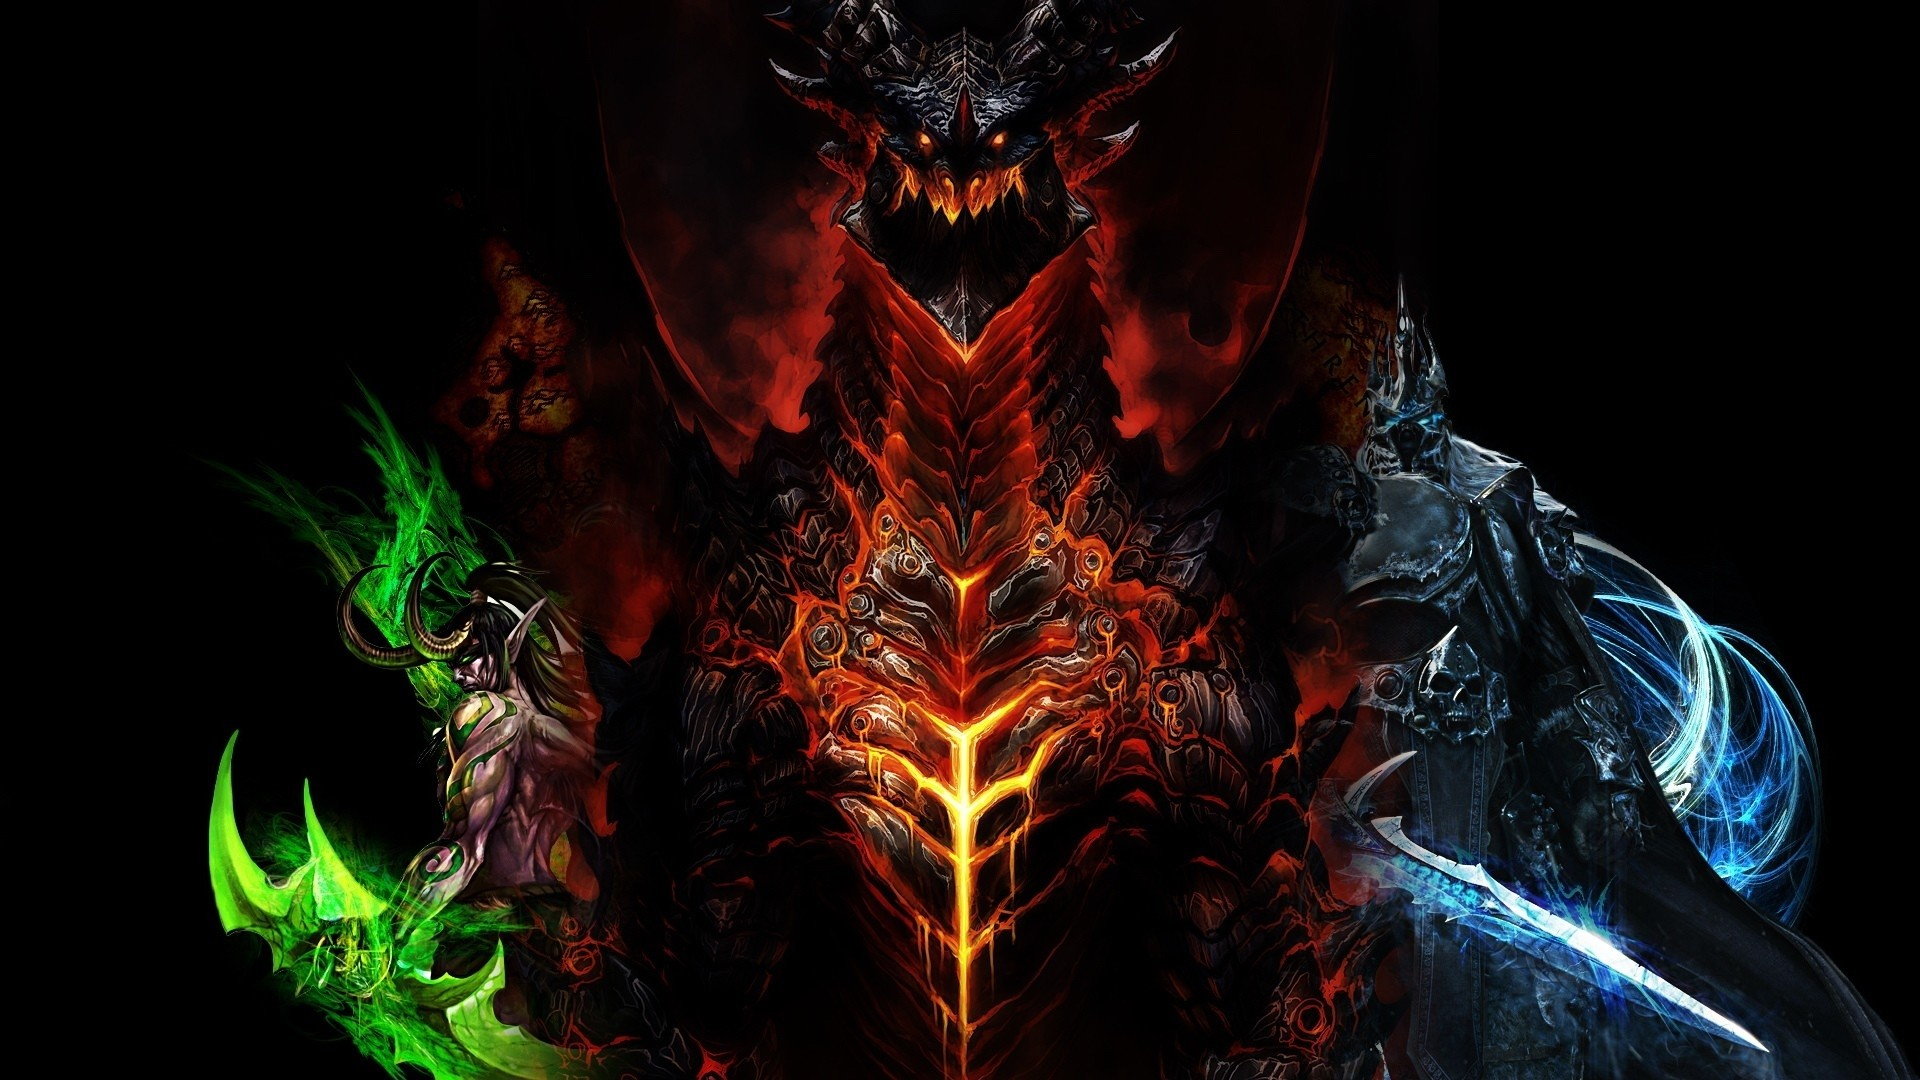 1920x1080 World of Warcraft WOW dark demon demons fantasy wallpaper .